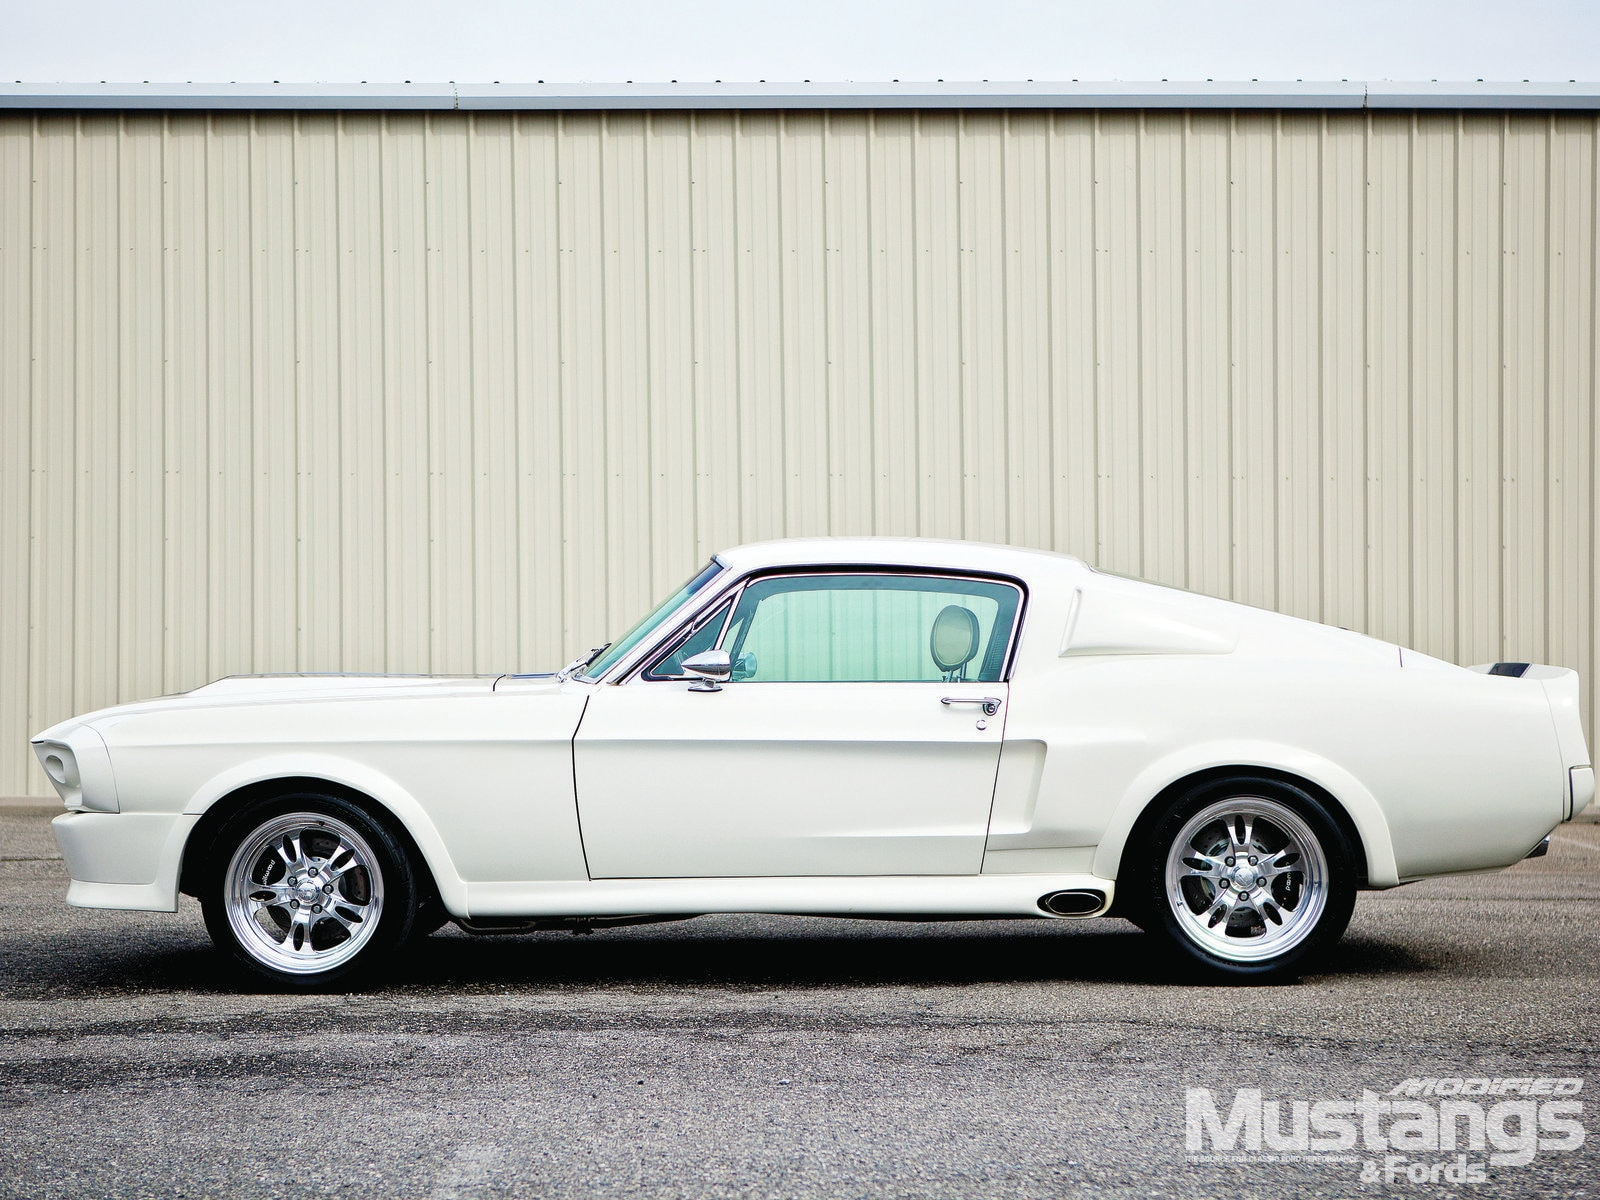 Mdmp 1210 03 1968 Ford Mustang Fastback Investment Property